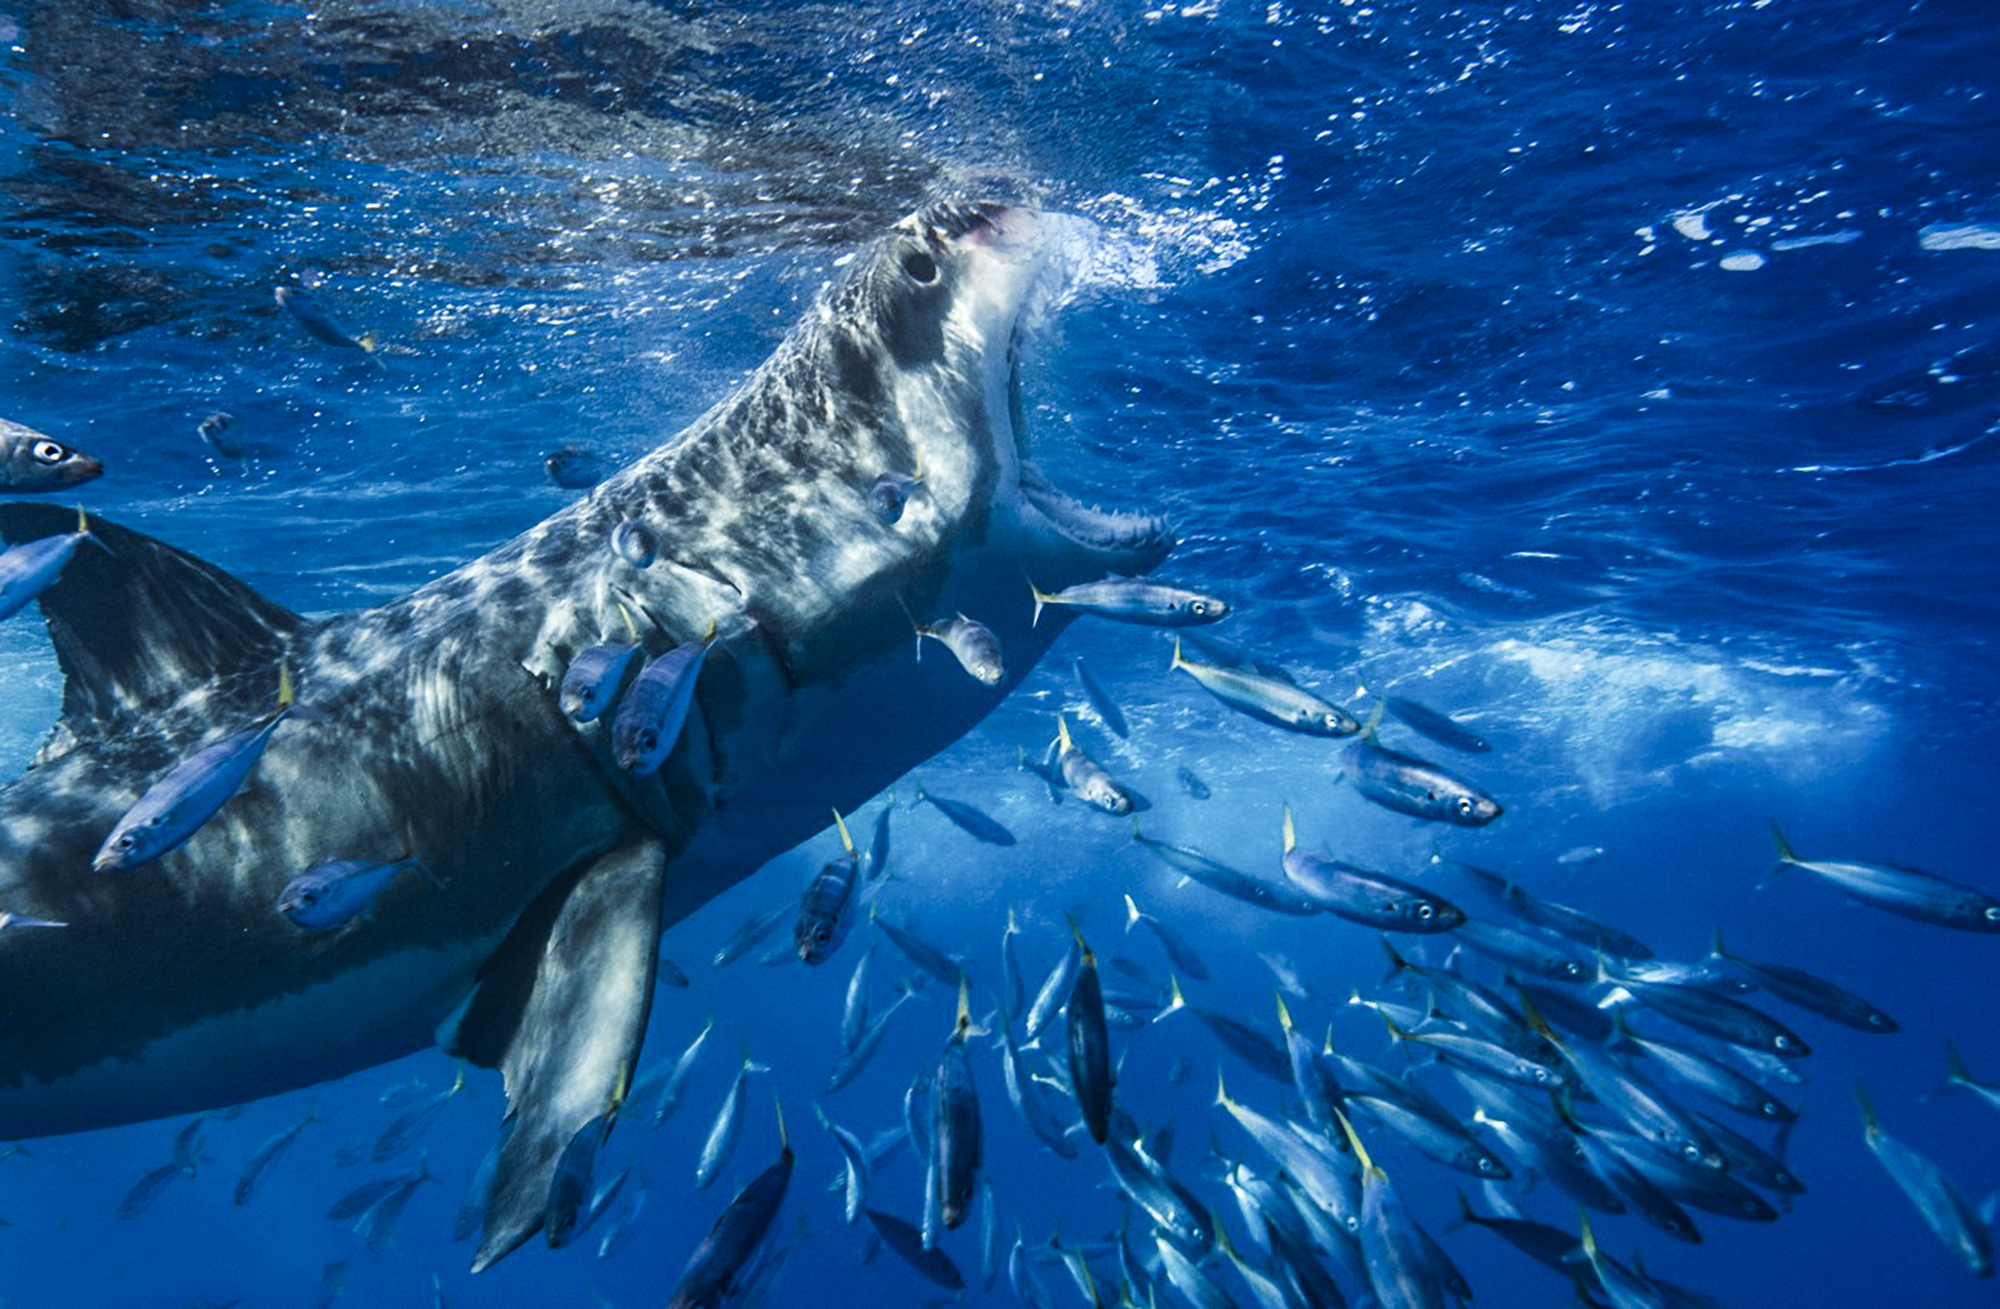 A great white goes for the tuna, photo by Saunders Drukker